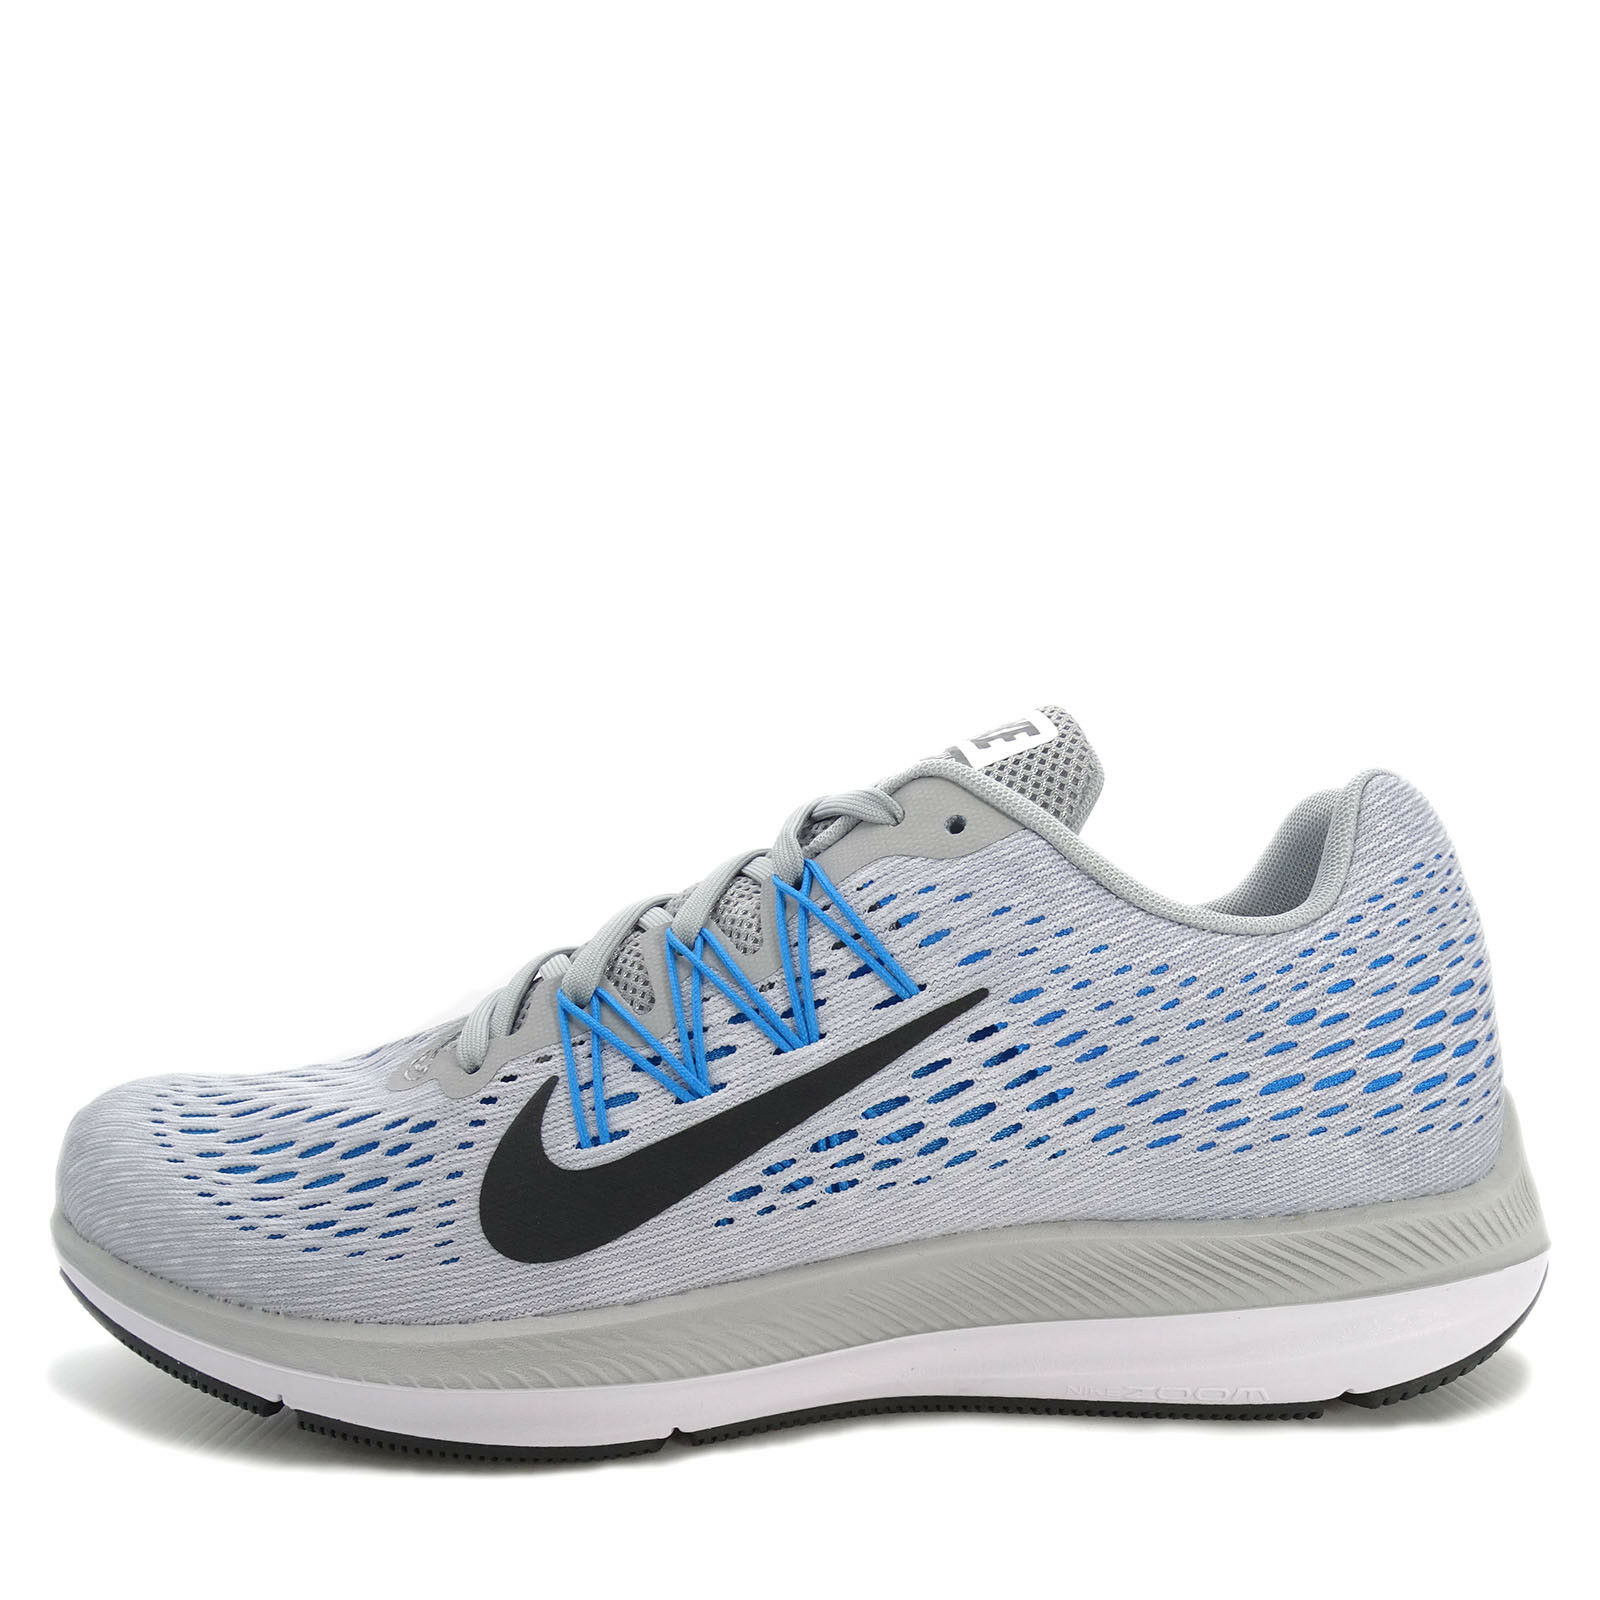 Nike Zoom Winflo 5 [AA7406-003] Men Running shoes Wolf Grey Anthracite